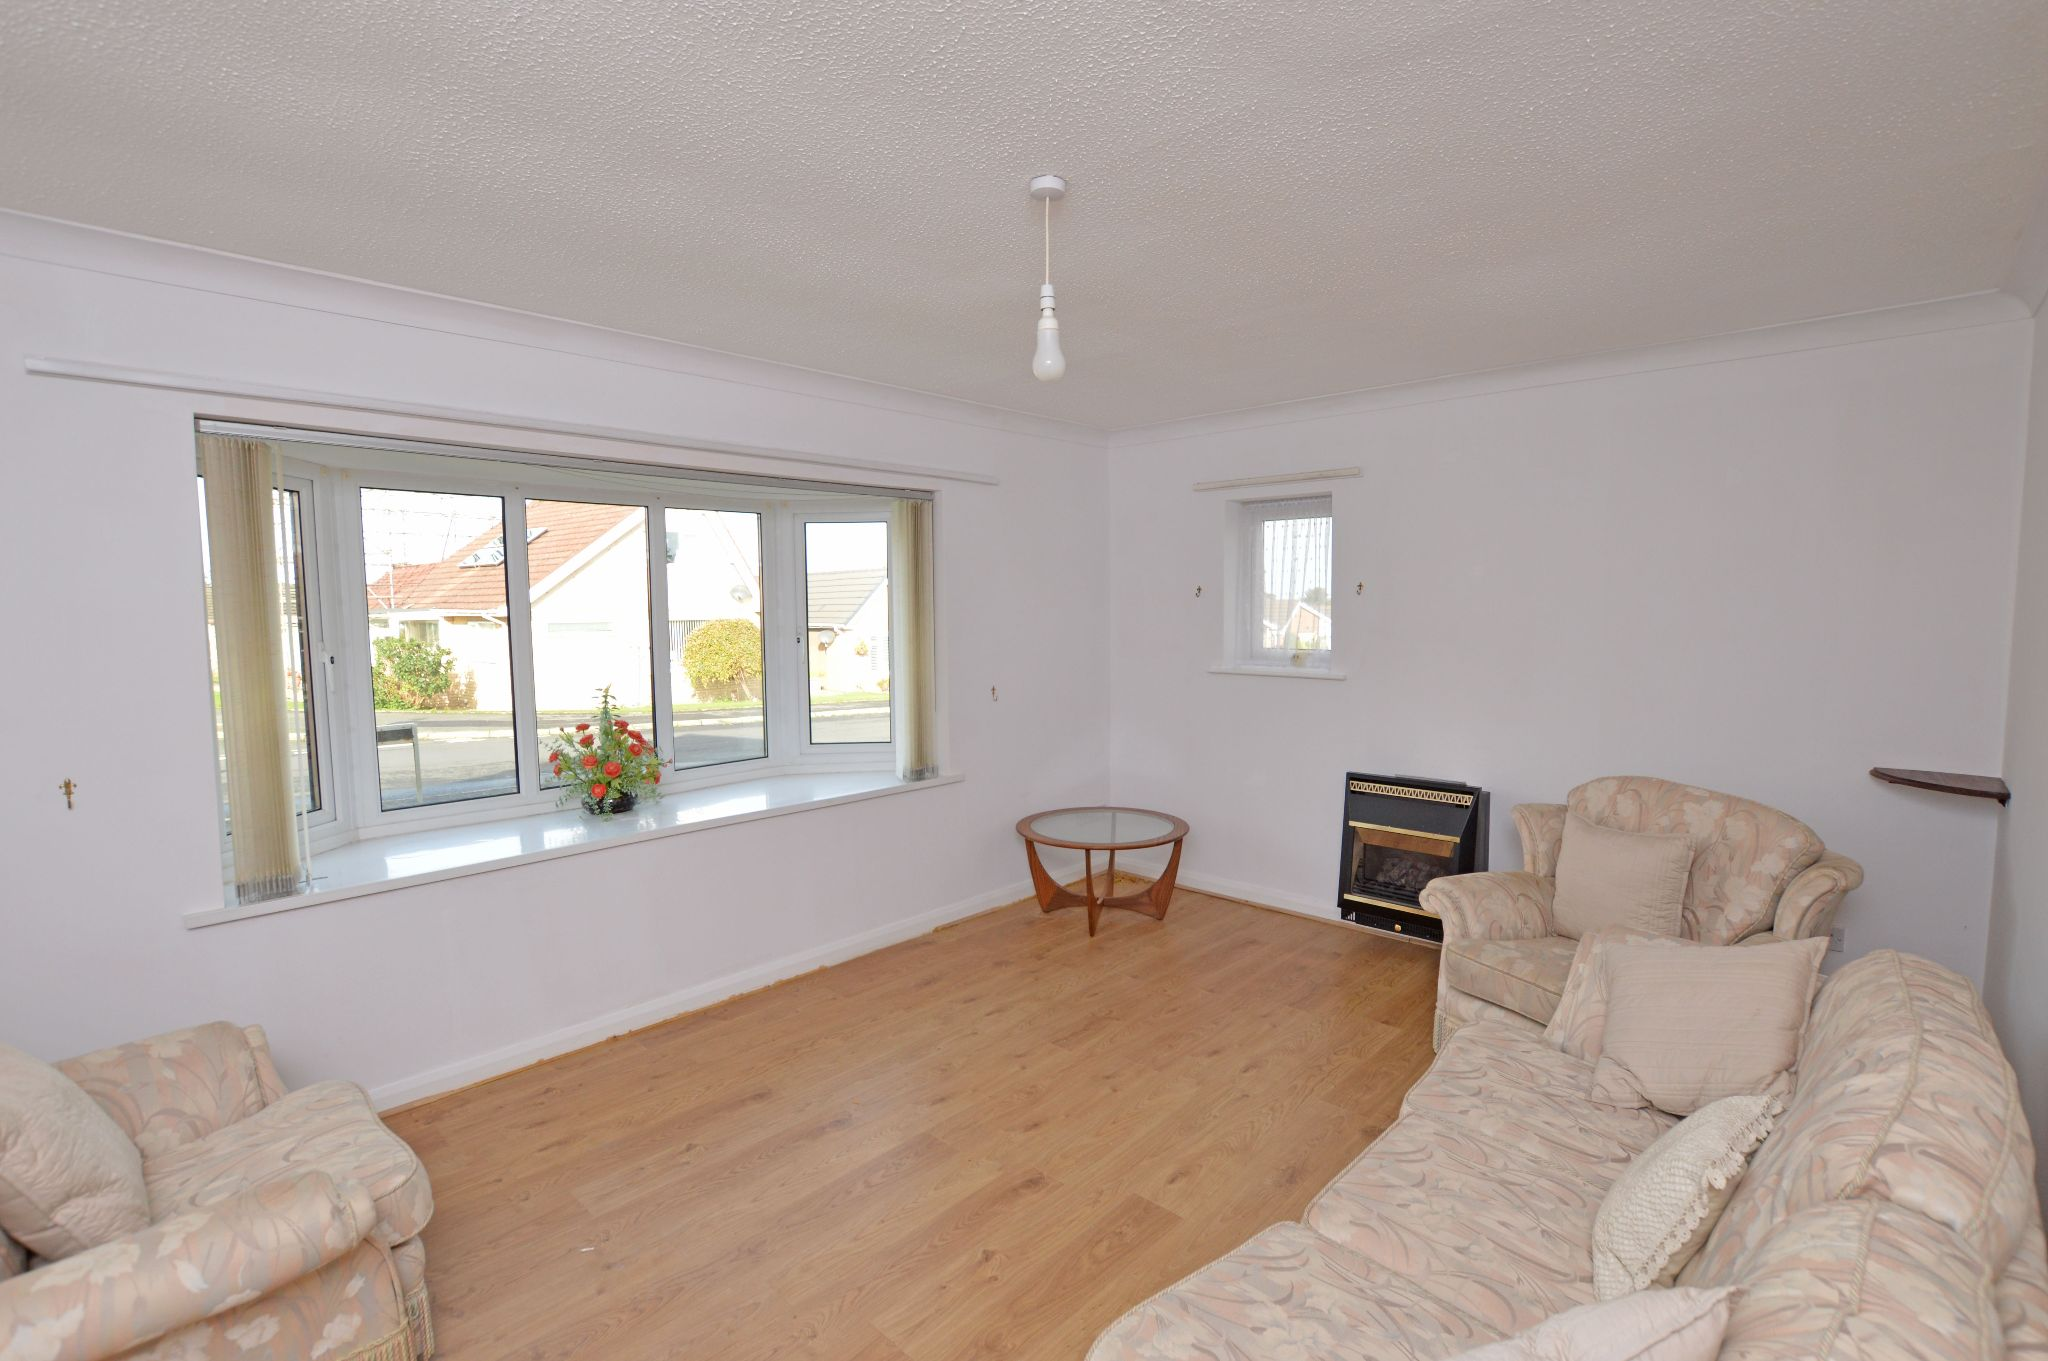 2 bedroom detached bungalow Under Offer in Abergele - Lounge